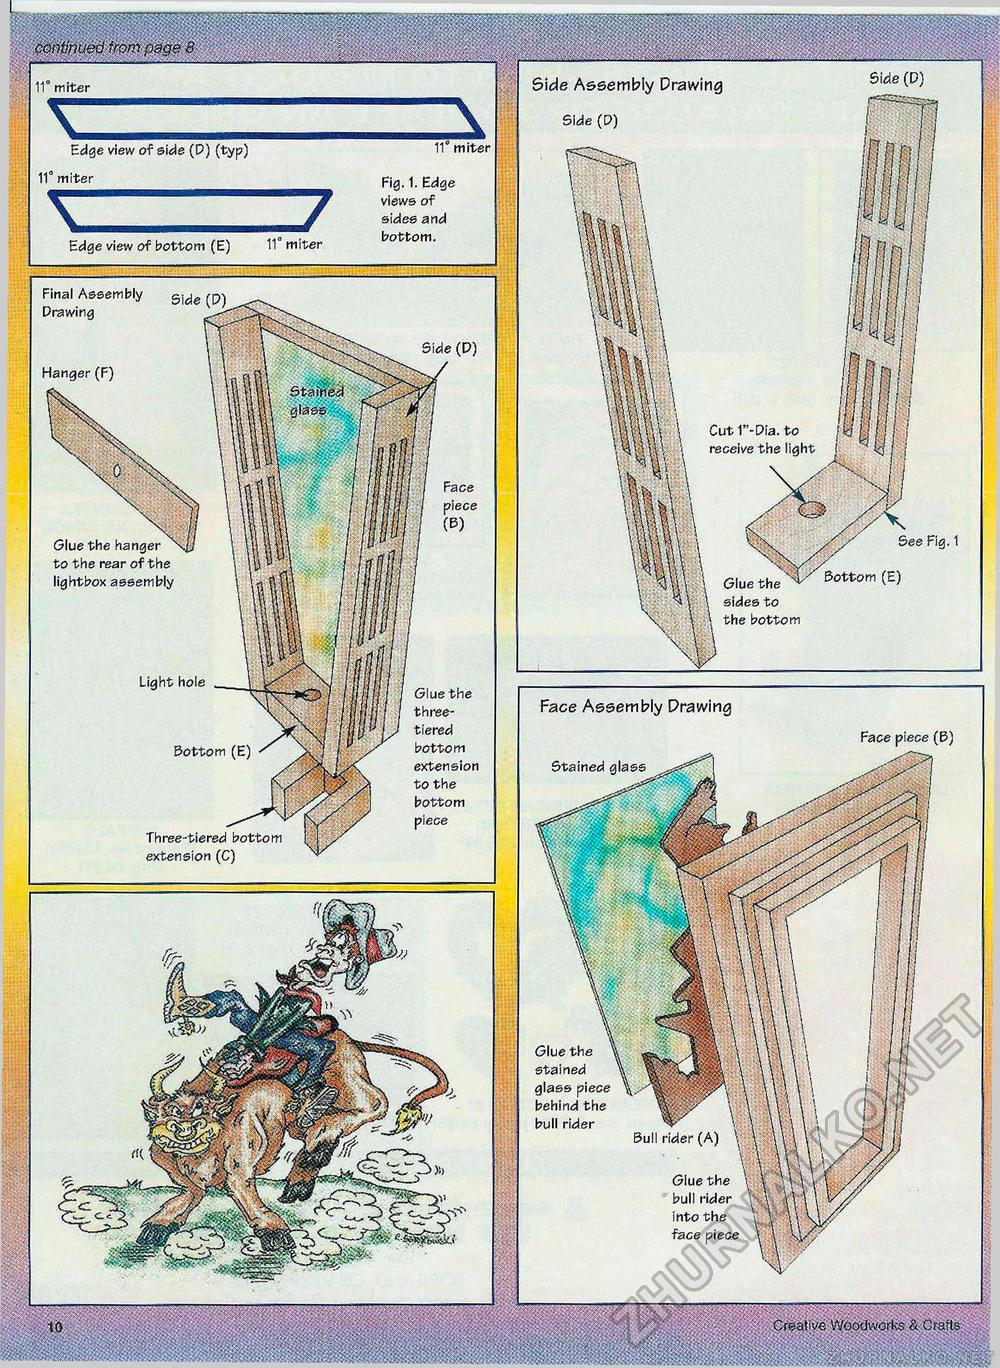 Creative Woodworks & crafts 2001-01, страница 10